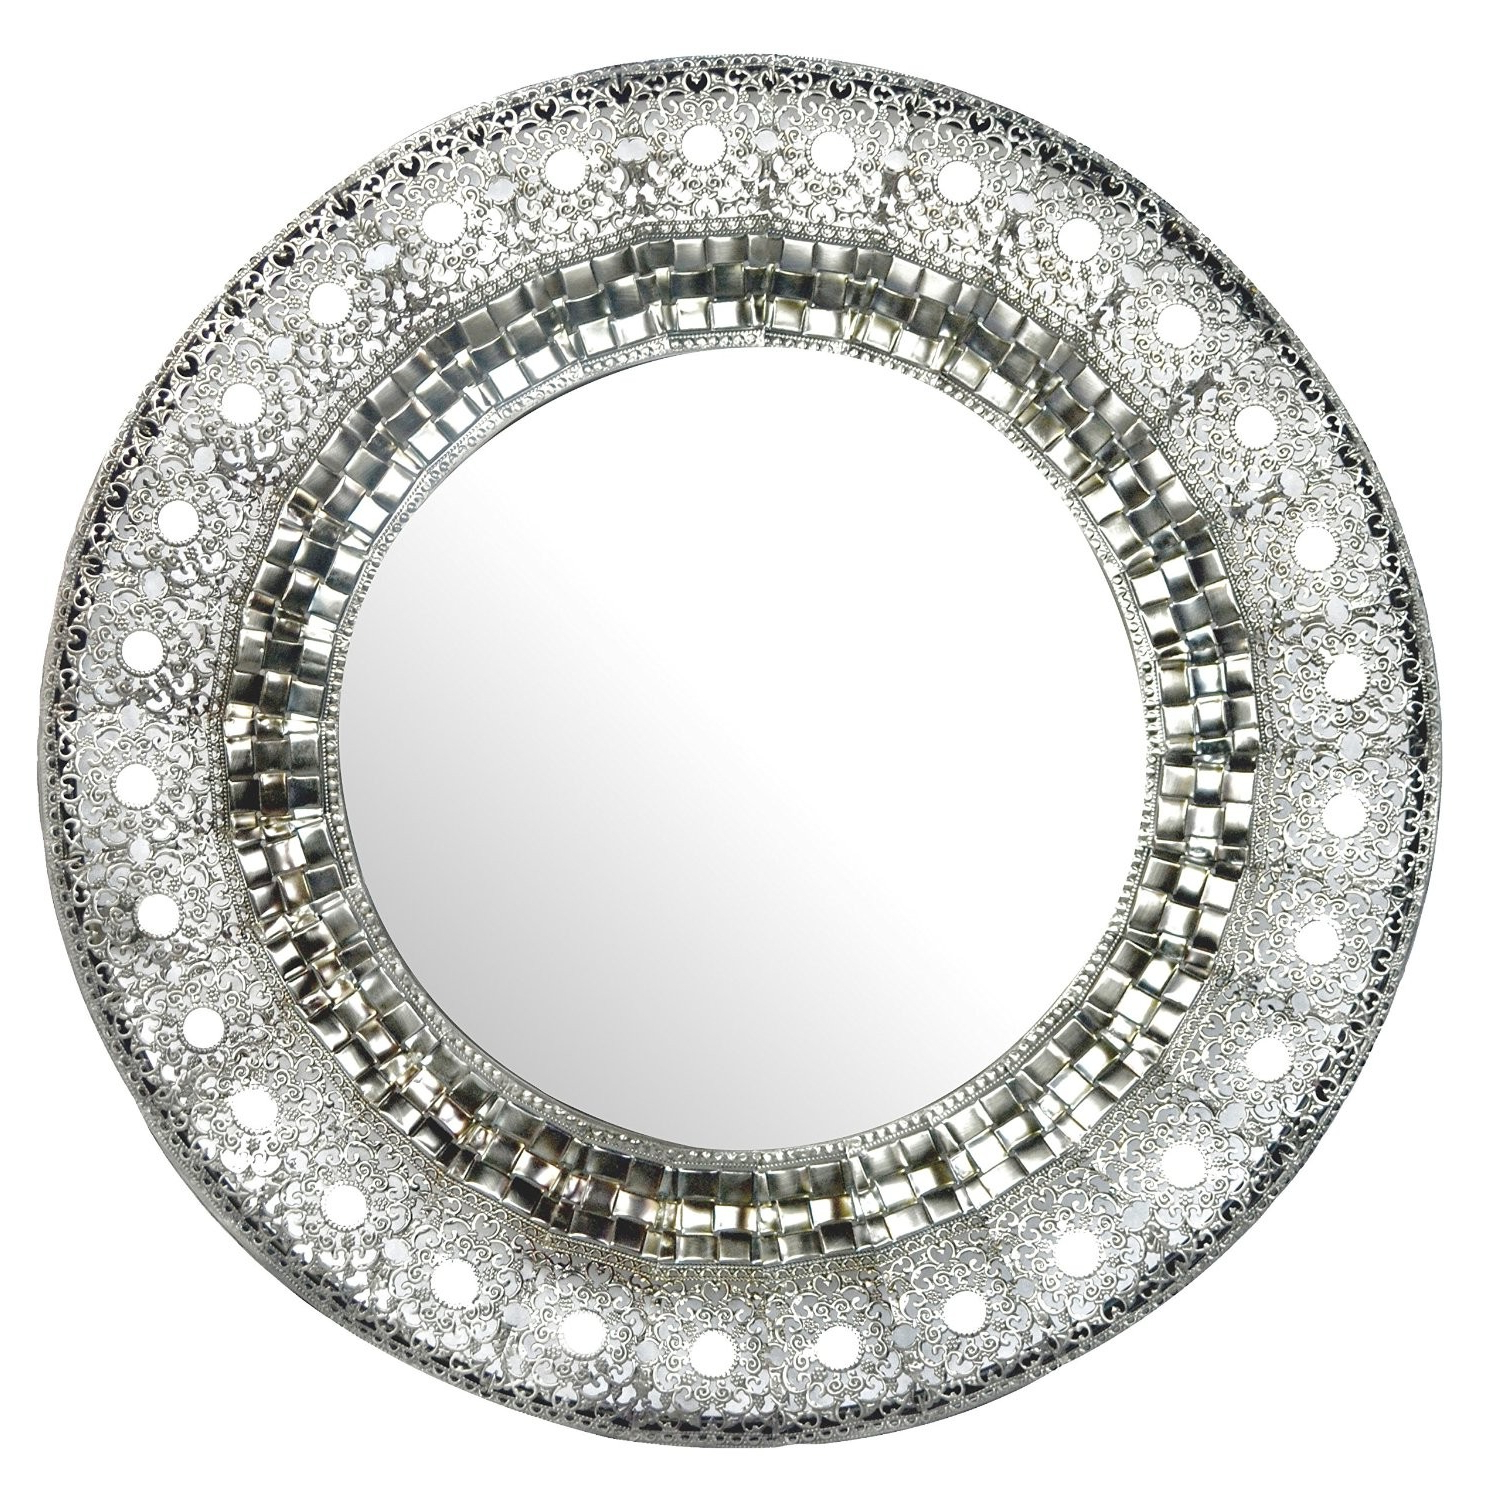 2020 Oriental Round Silver Metal Beveled Wall Mirror, Decorative Mirror Pertaining To Silver Round Wall Mirrors (View 1 of 20)